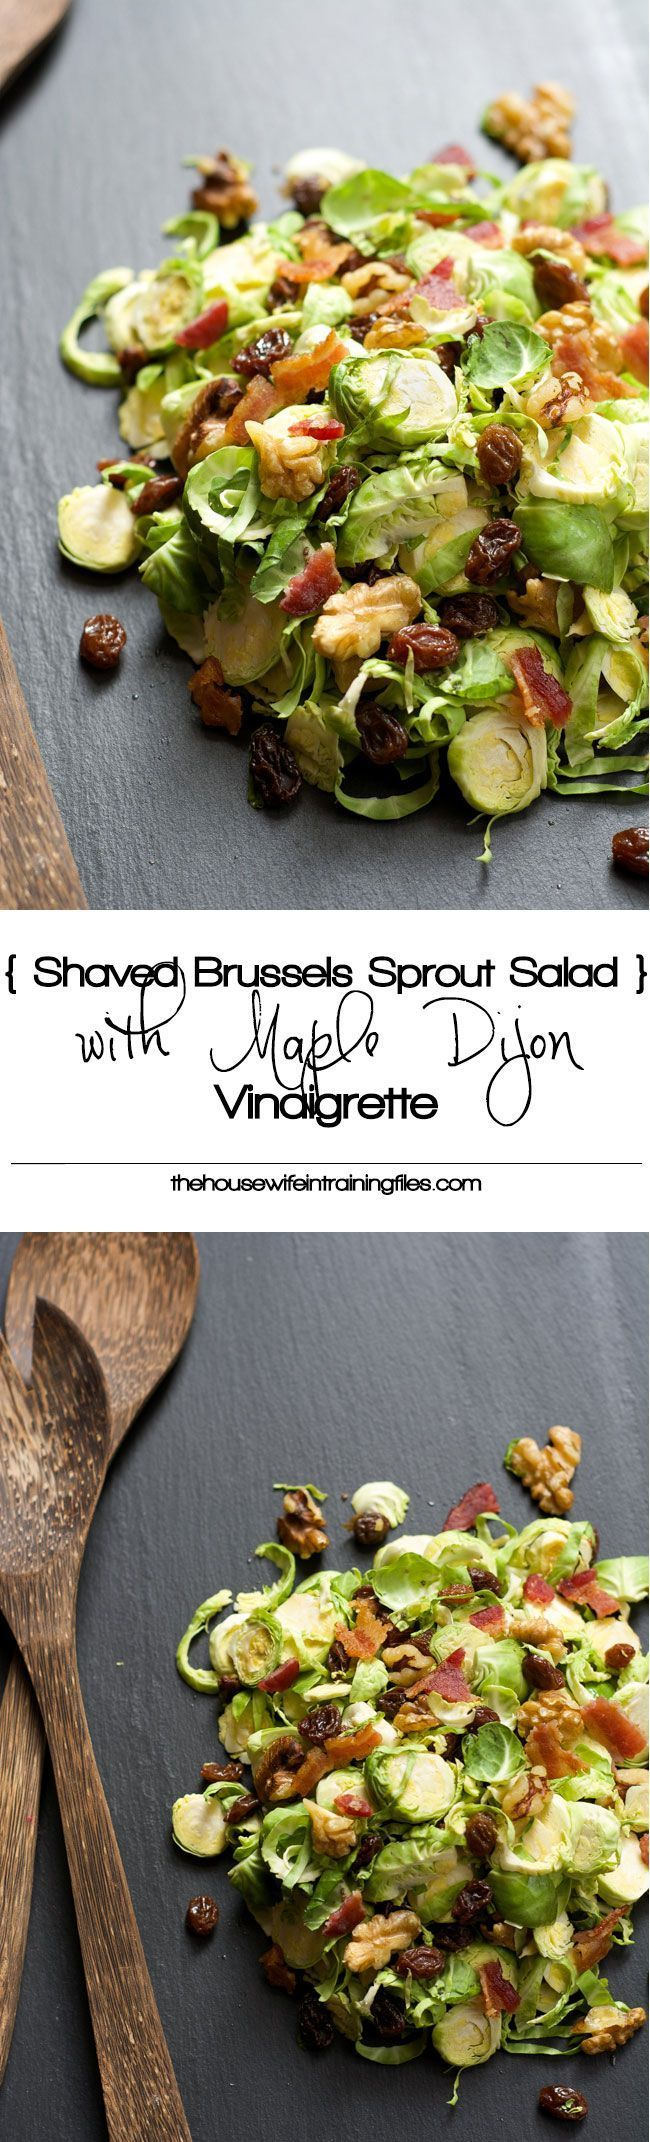 Shaved Brussels Sprout Salad | Shredded, Recipes, Crunchy, Healthy, Raw, Cranberries, Warm, With Bacon, Cold, Dressing